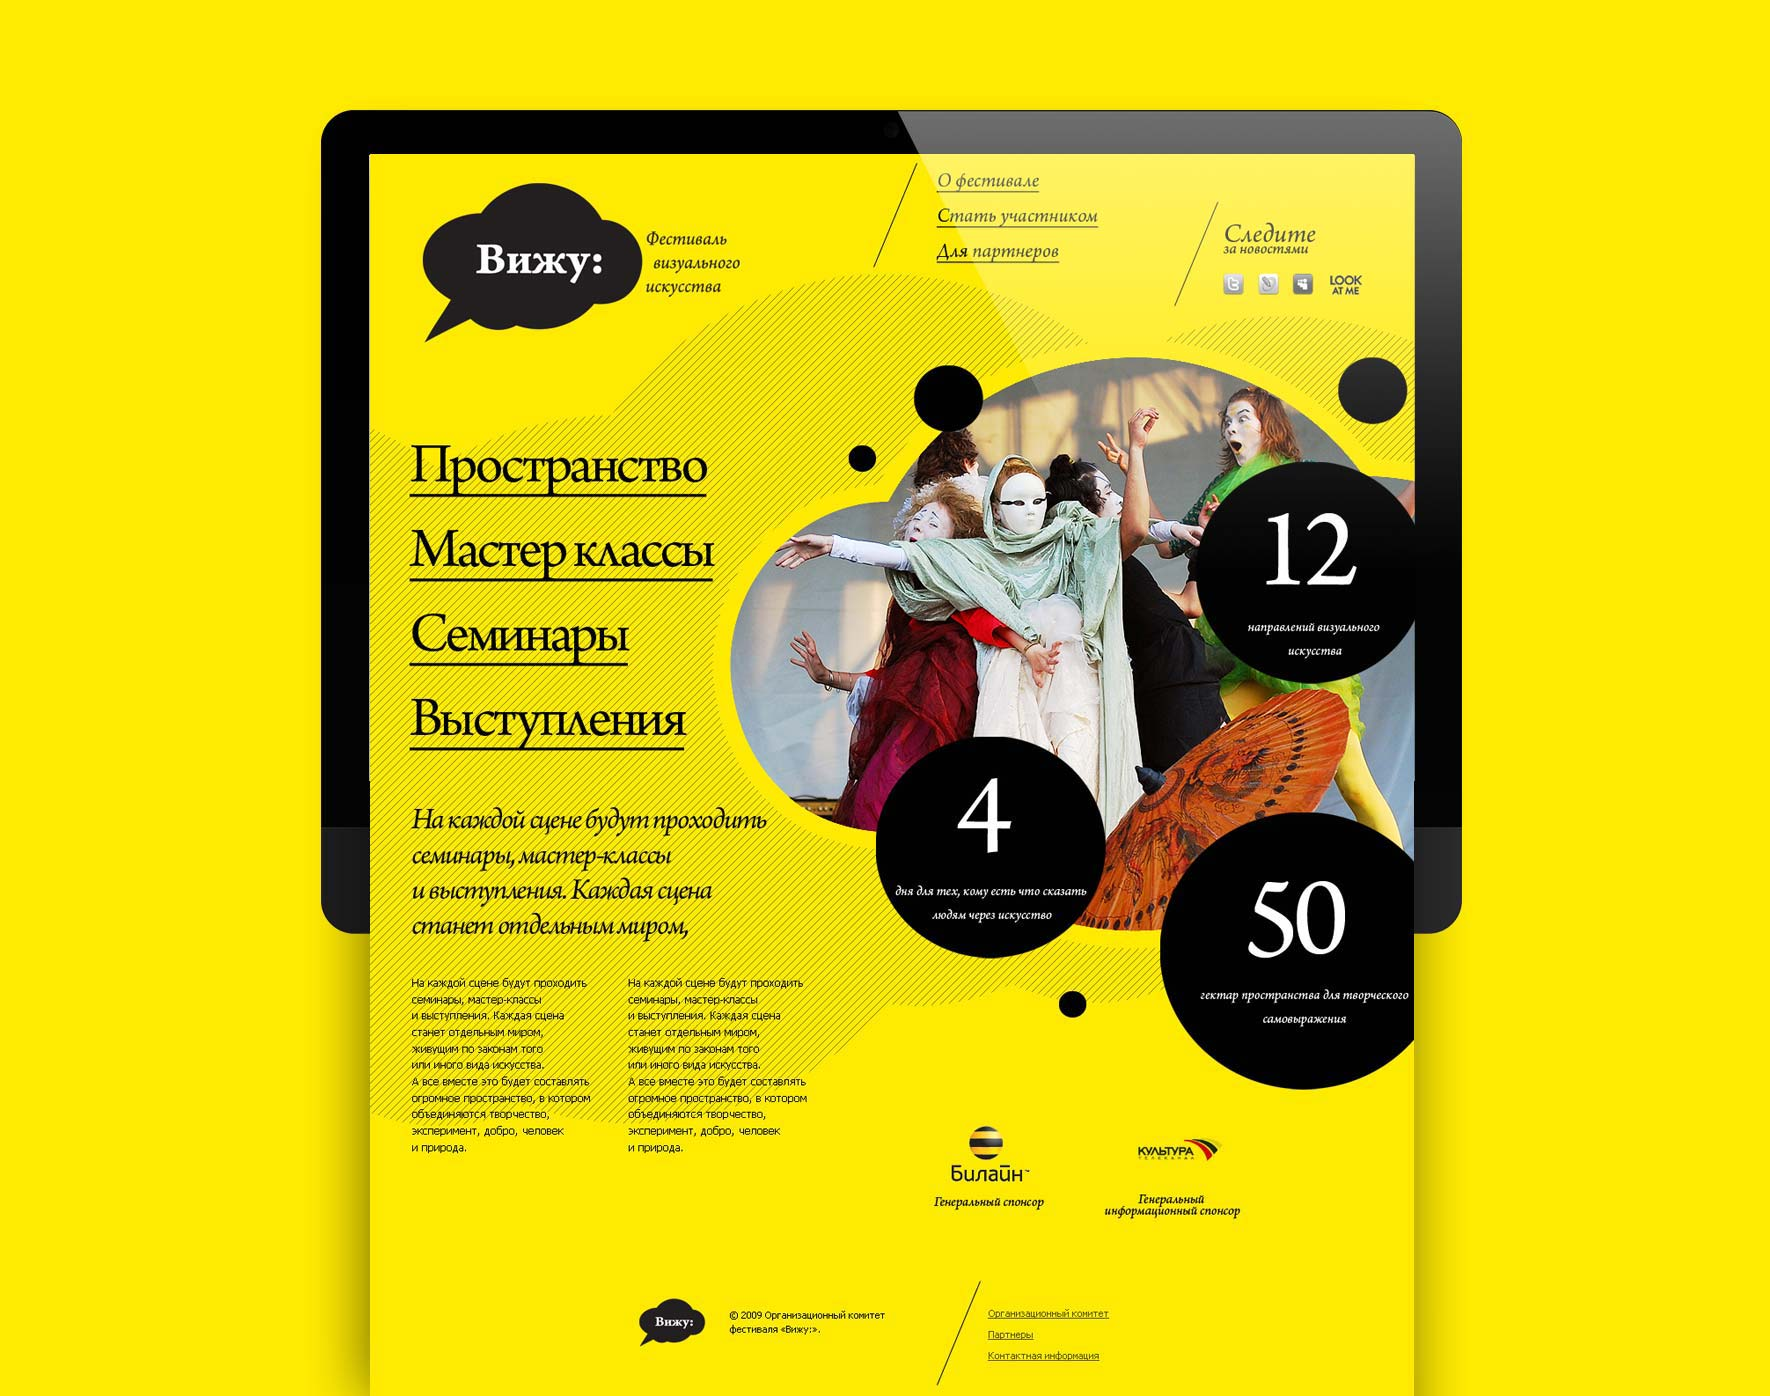 web design for the event